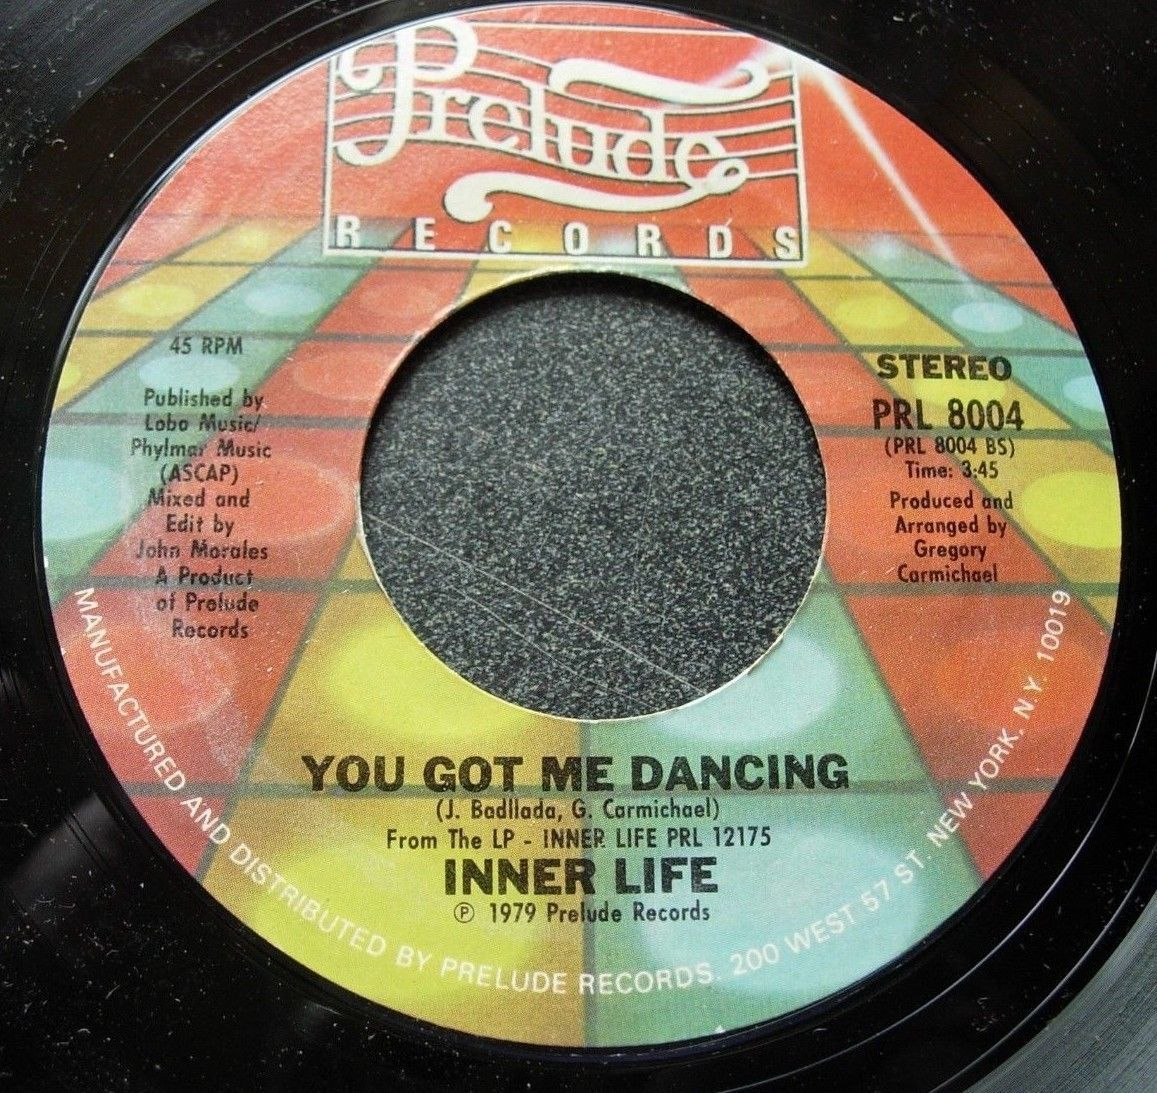 Inner Life - I'm Caught Up (In A One Night Love..) Prelude Records PRL 8004